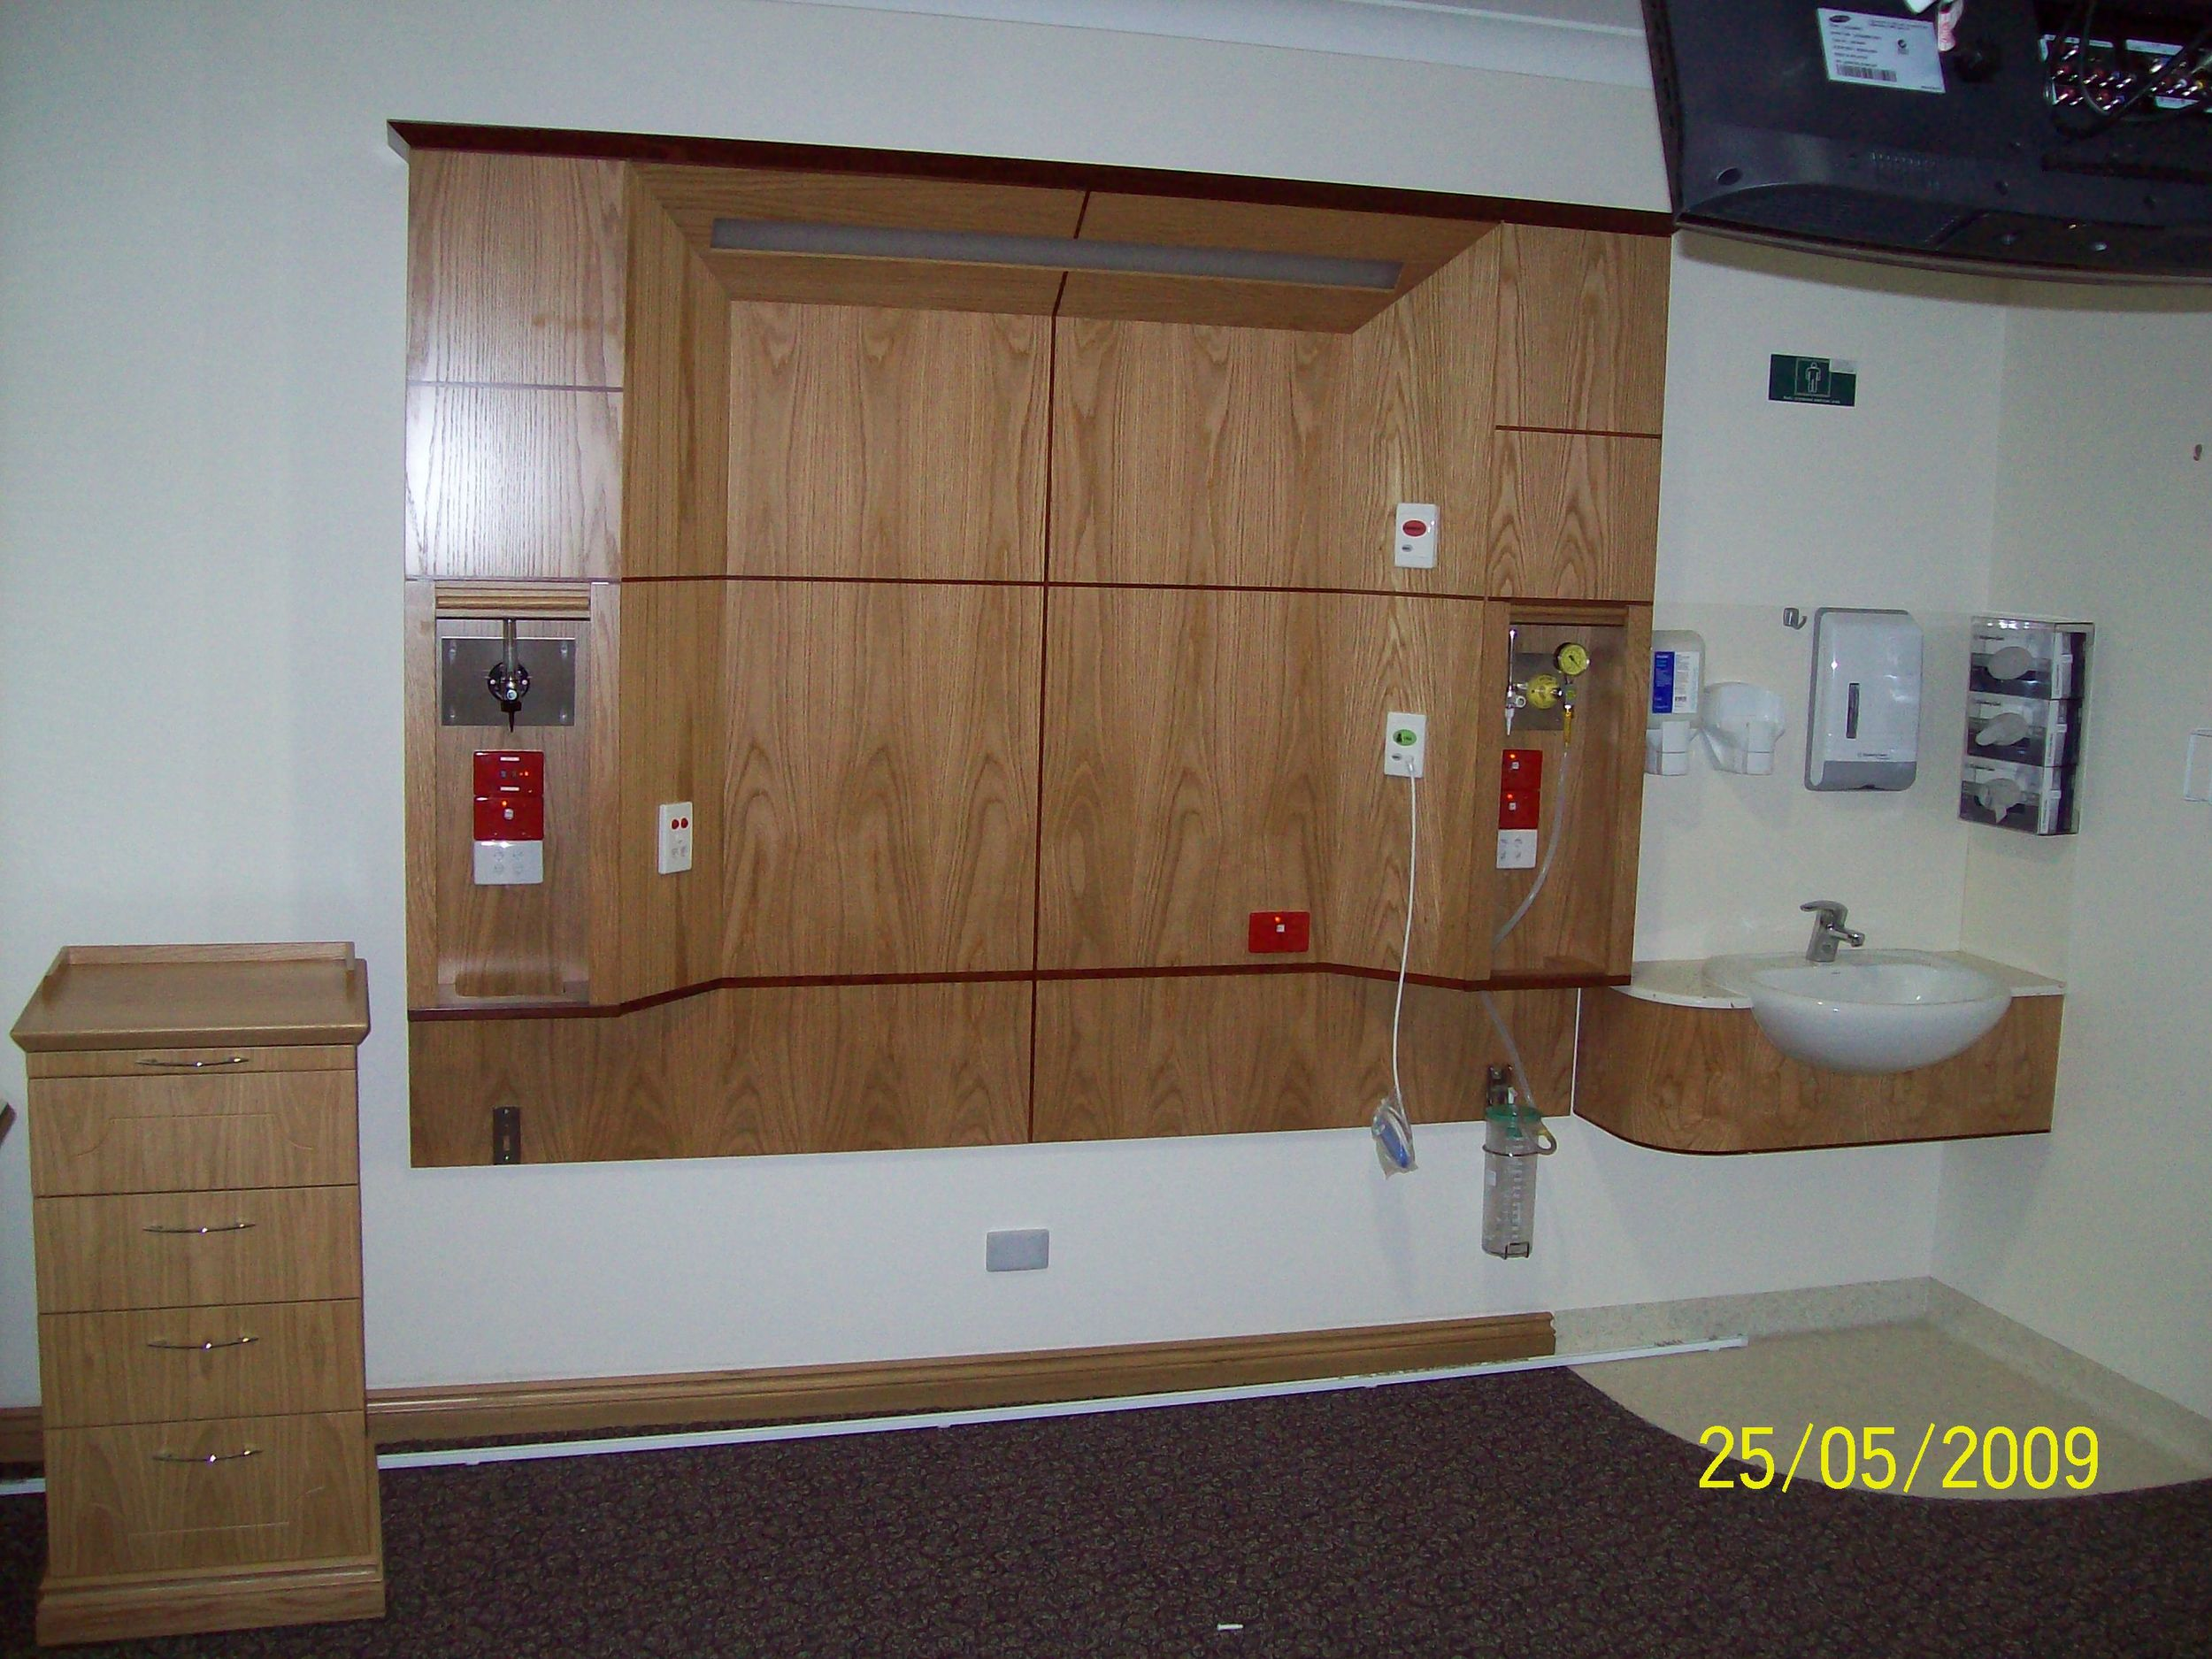 East Wing Typical 1 bed ward bedhead.JPG